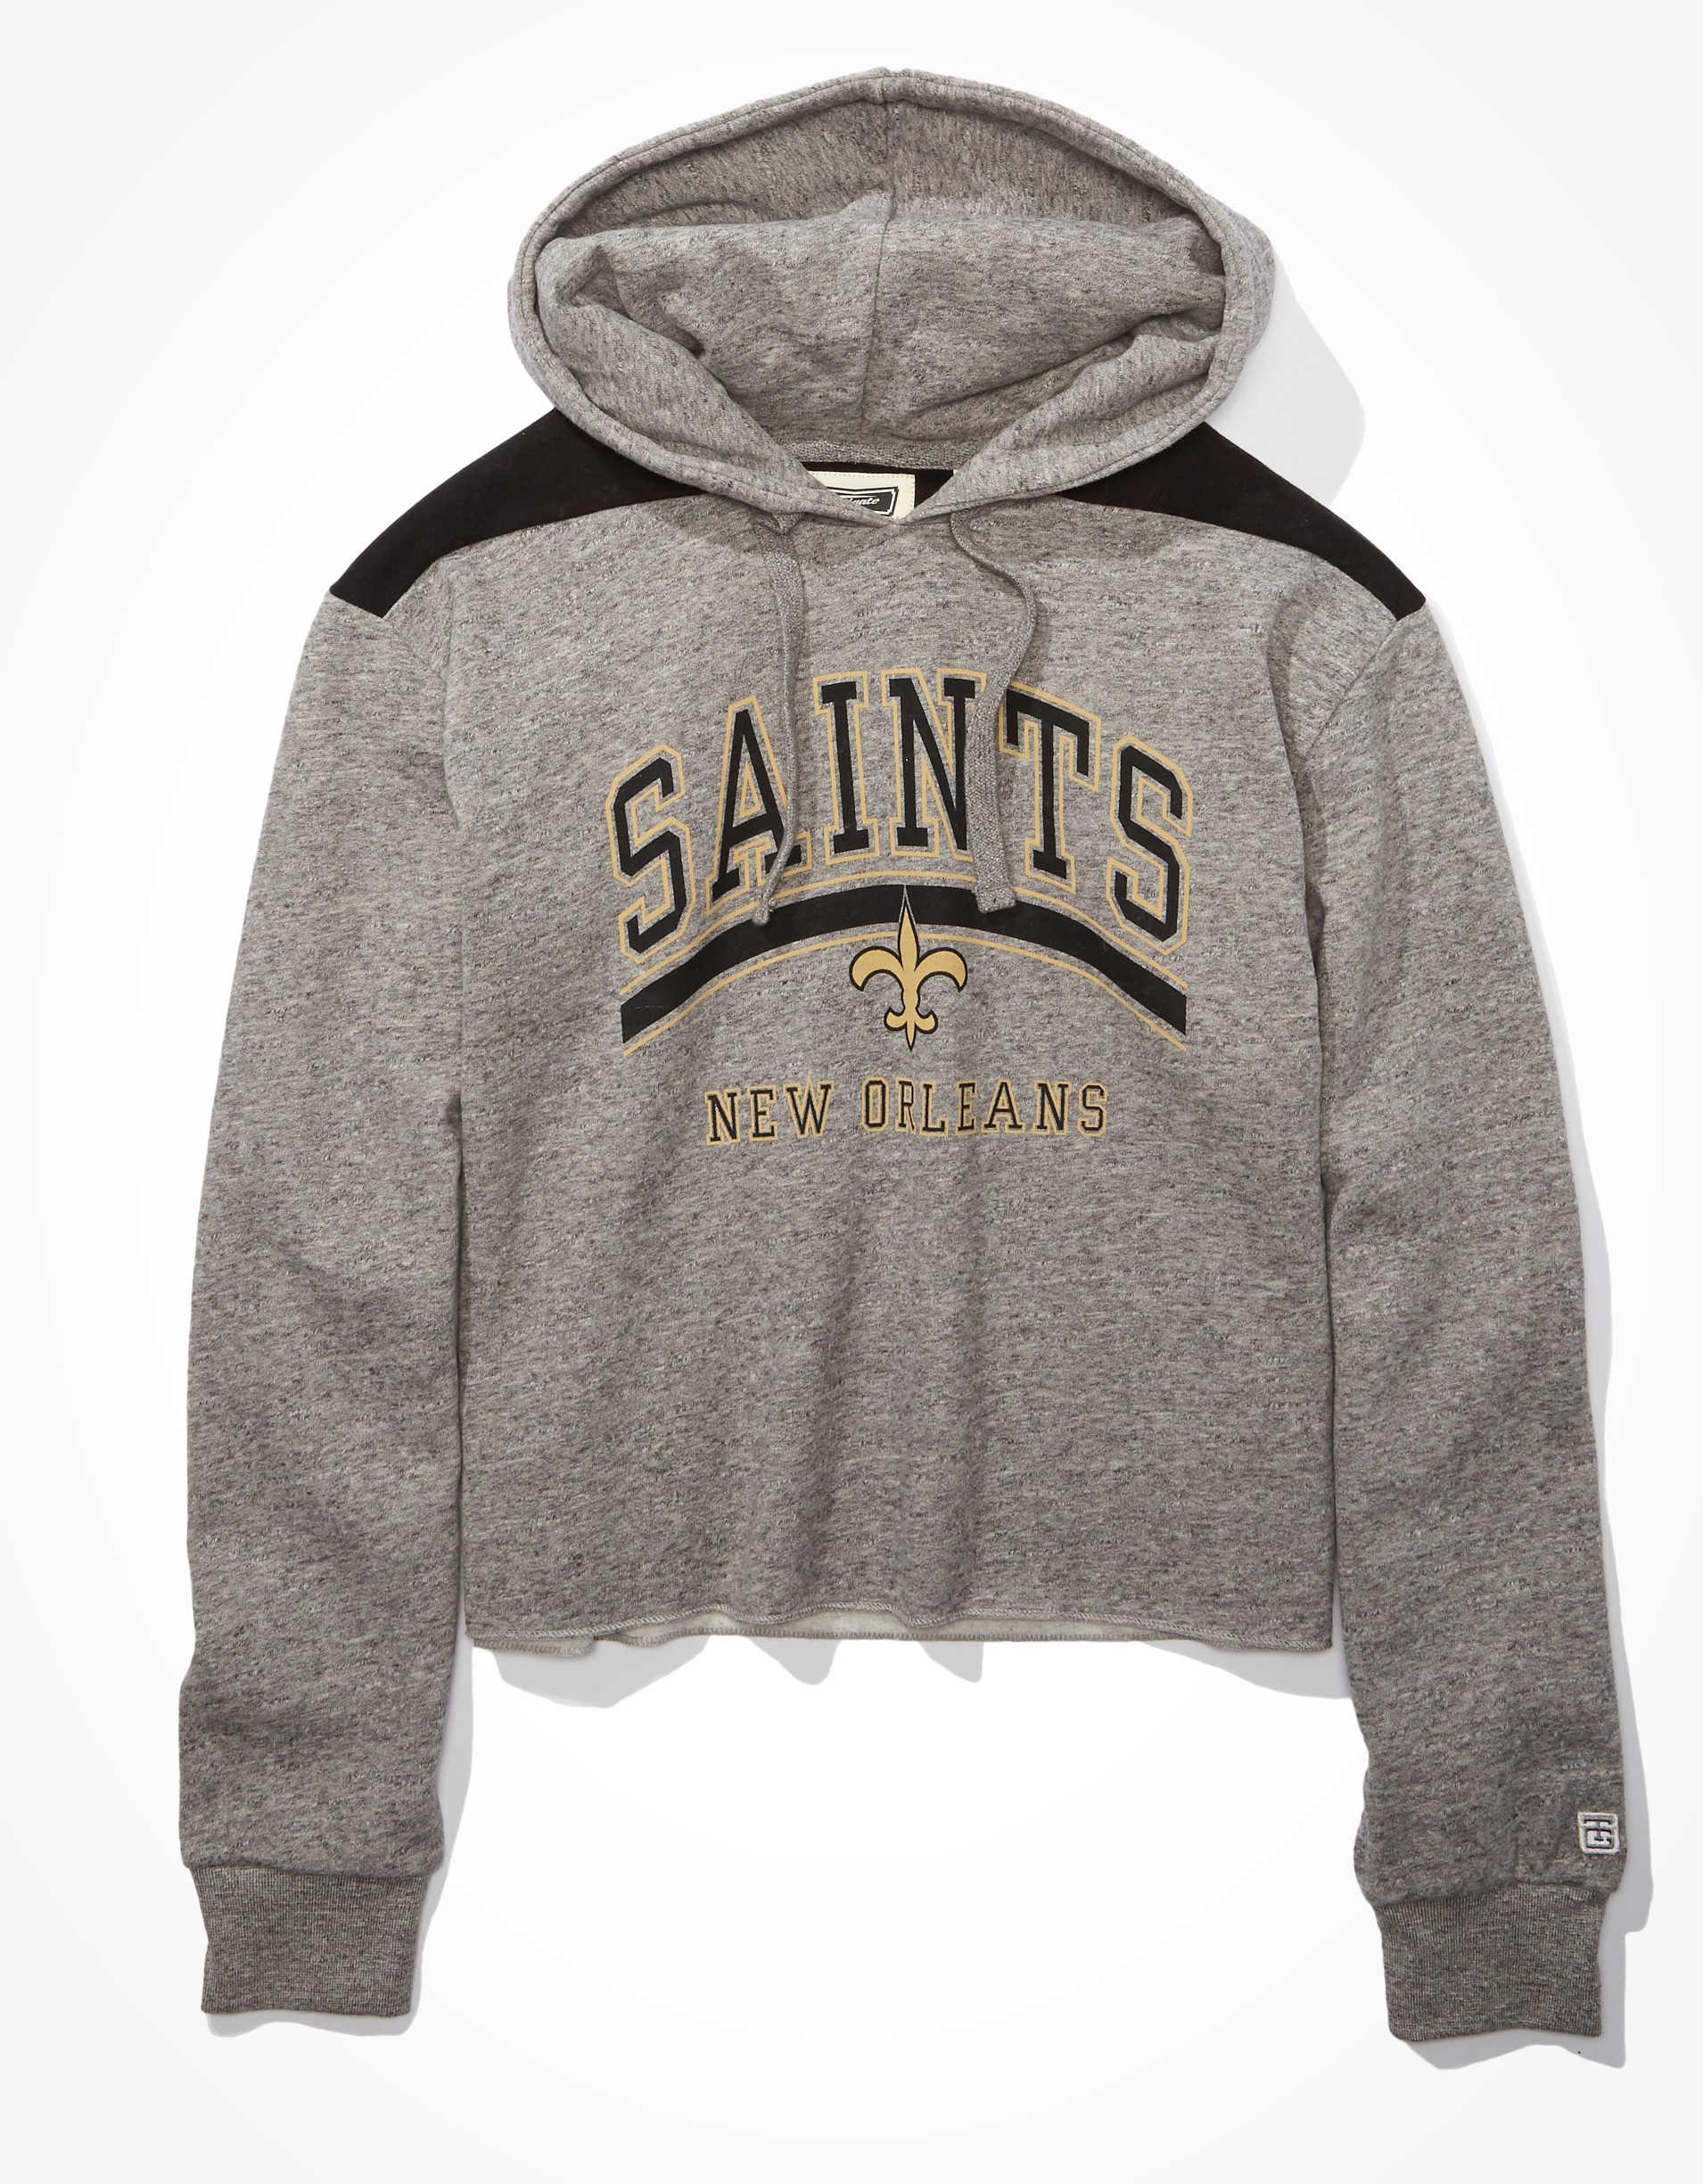 Tailgate Women's New Orleans Saints Cropped Hoodie